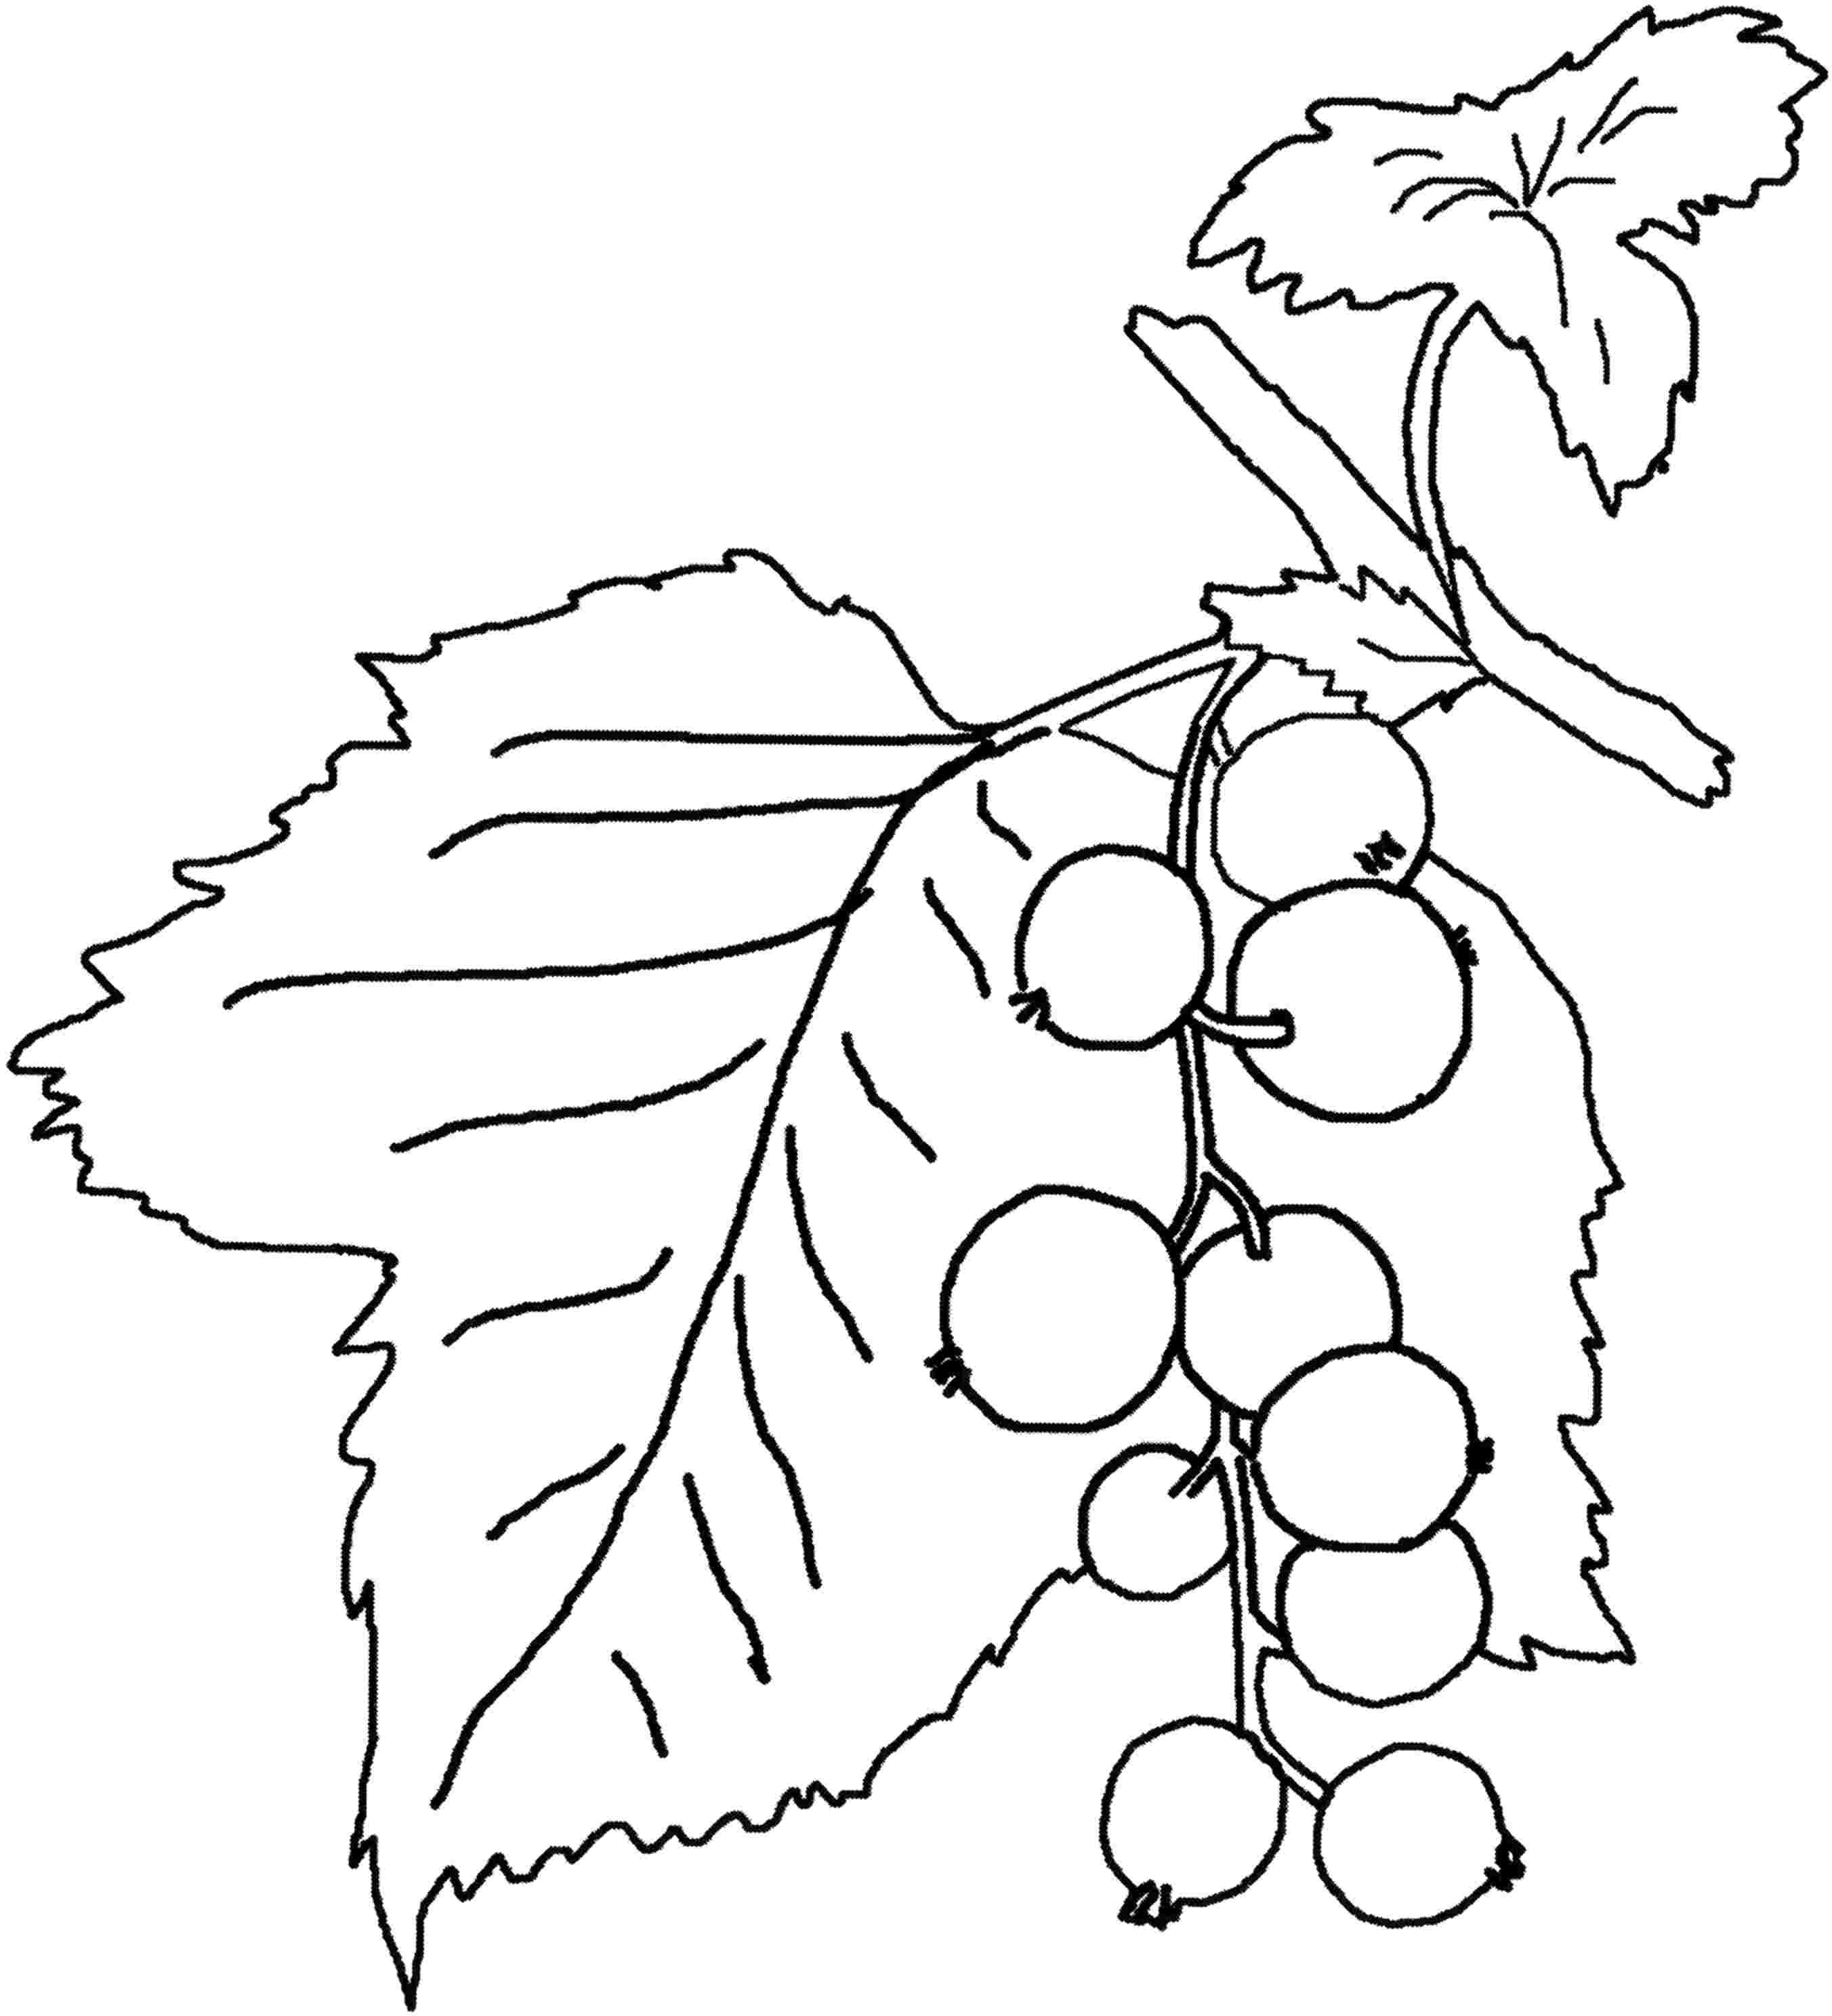 2704x2975 Unusual Inspiration Ideas Berry Coloring Pages Fruit And Berries